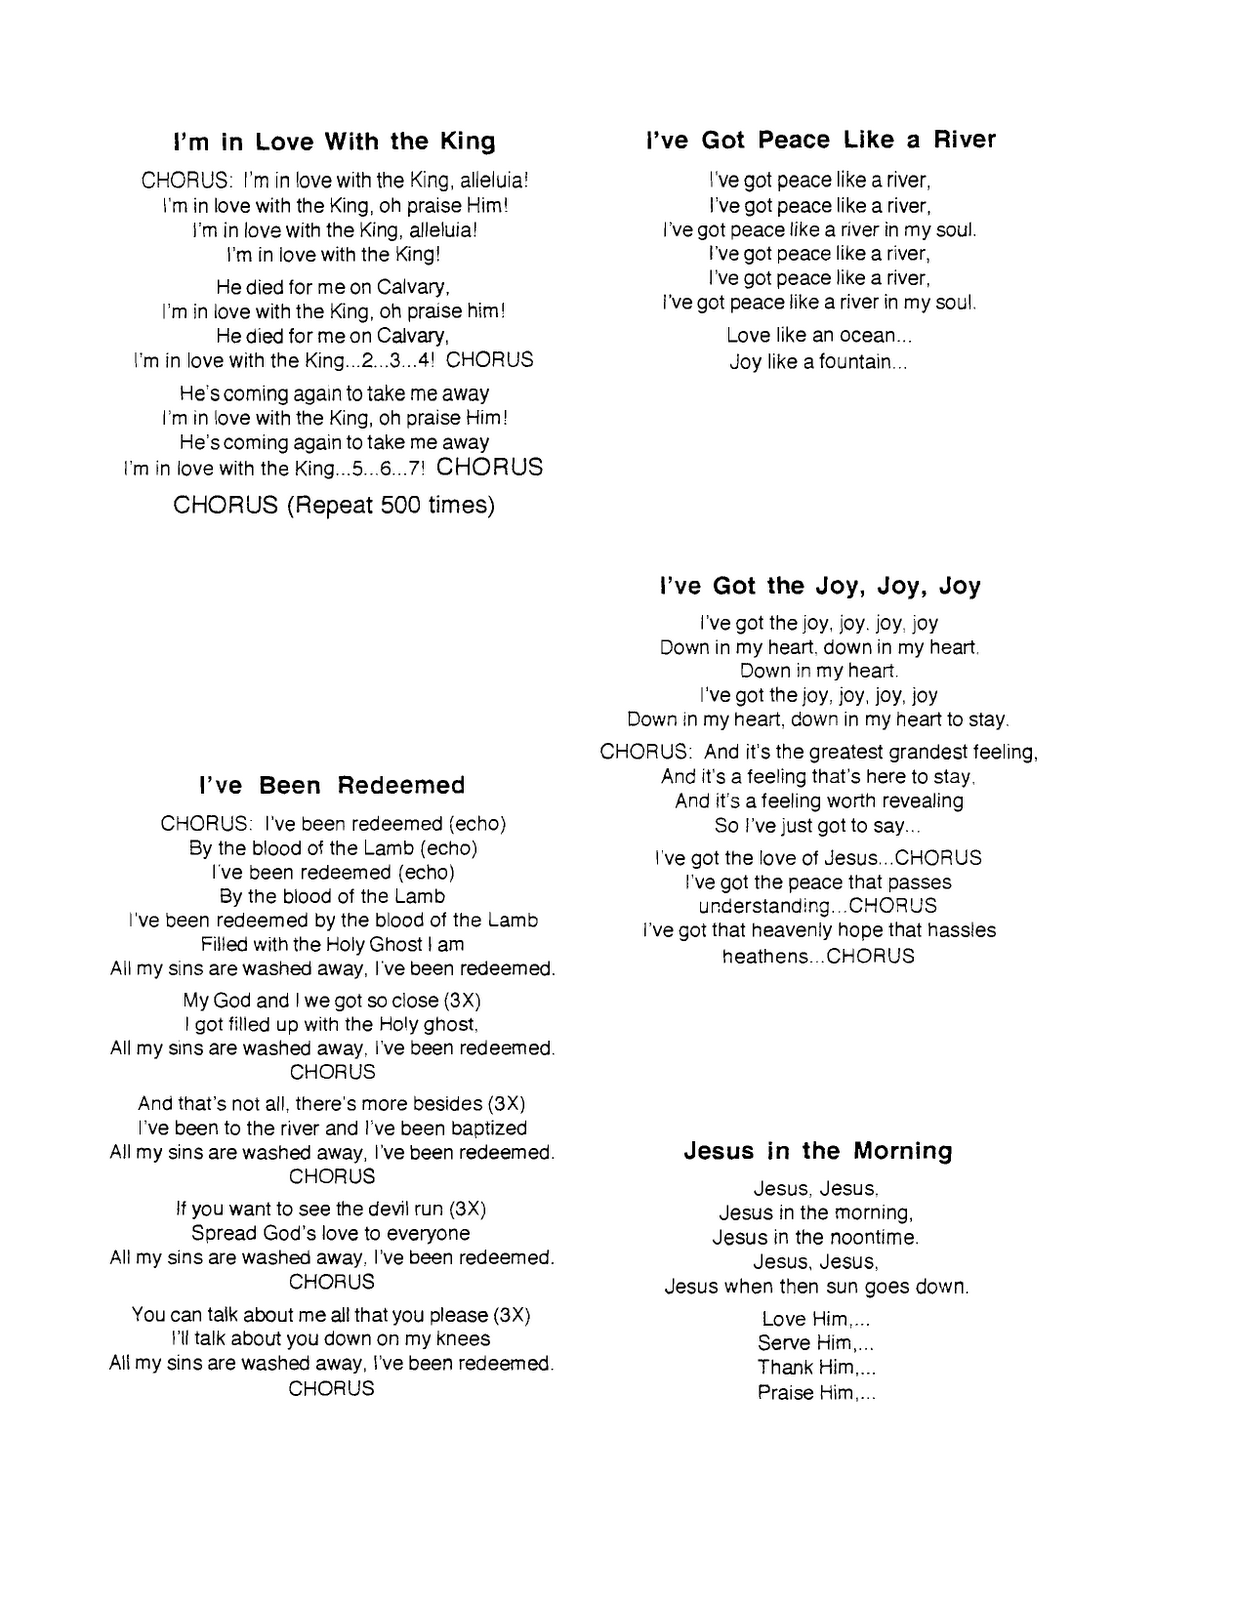 over again song lyrics